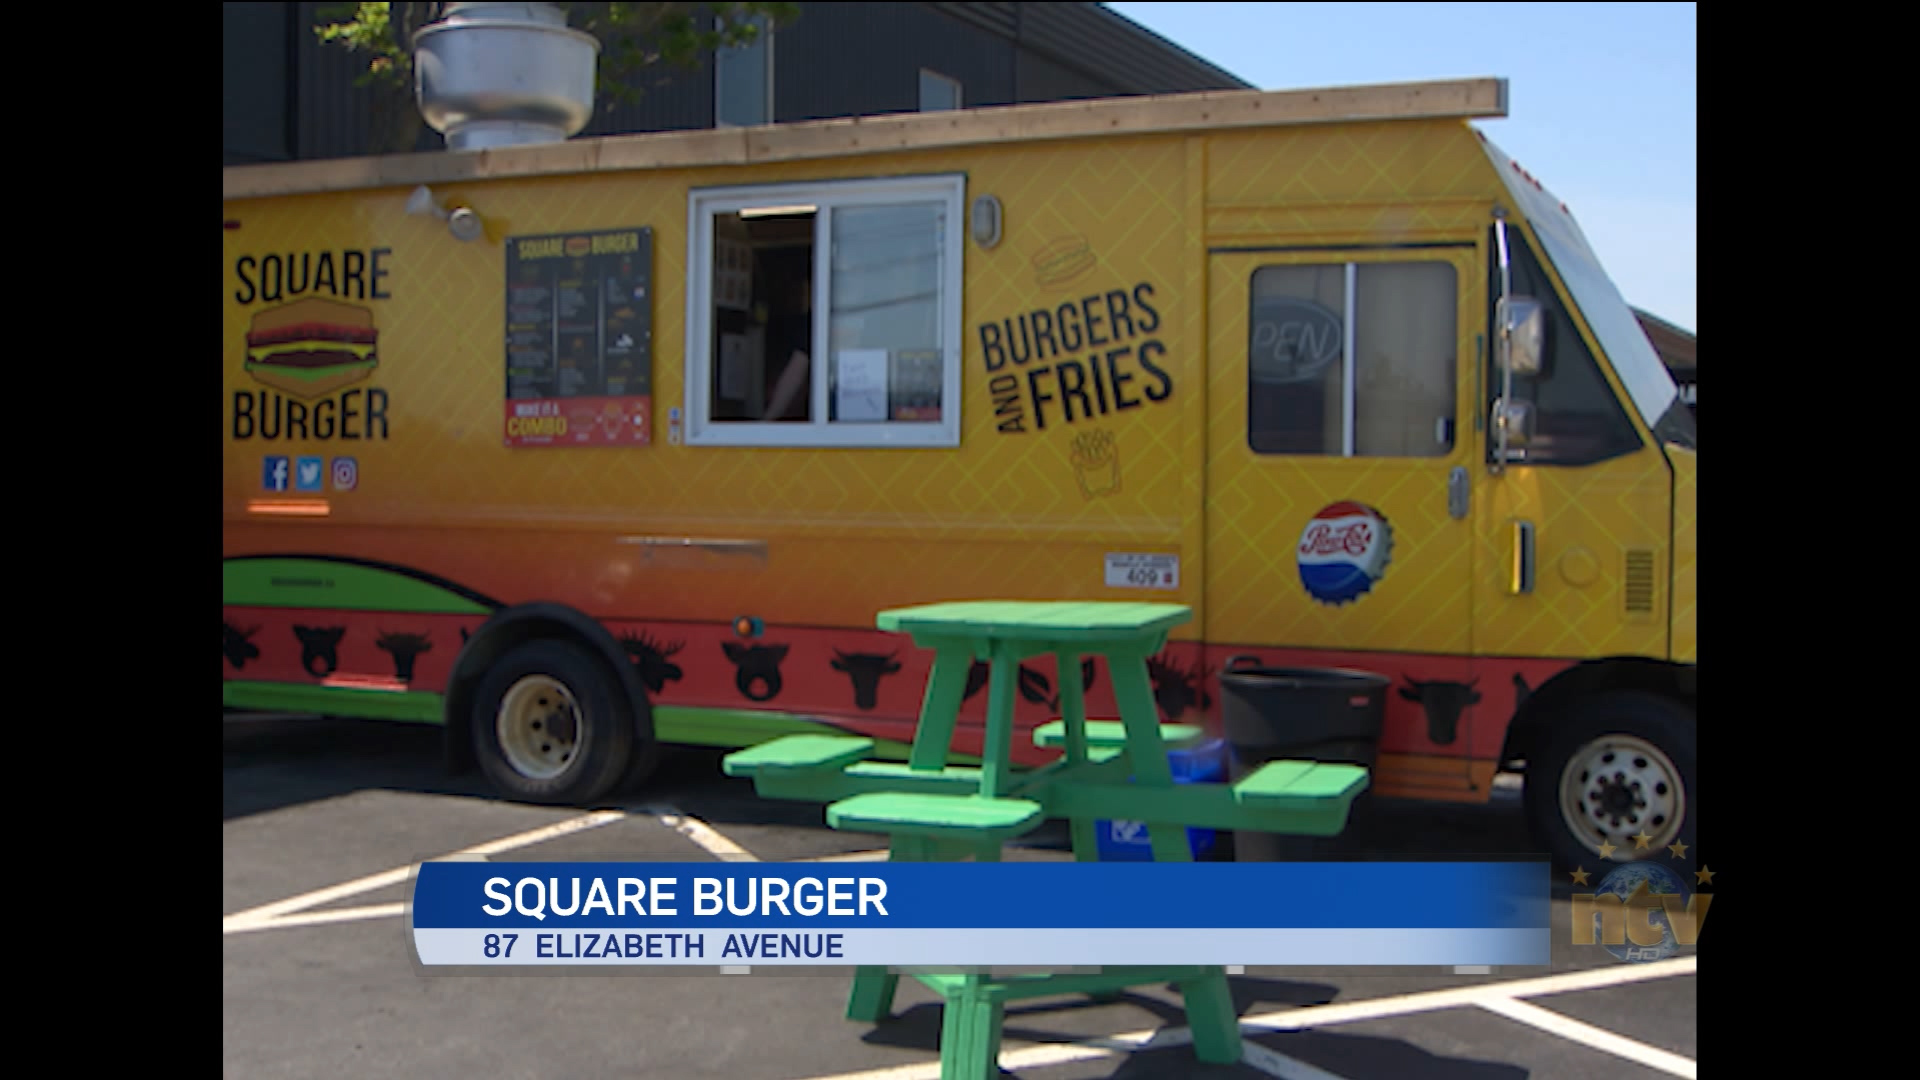 Square Burger features beef from western Newfoundland